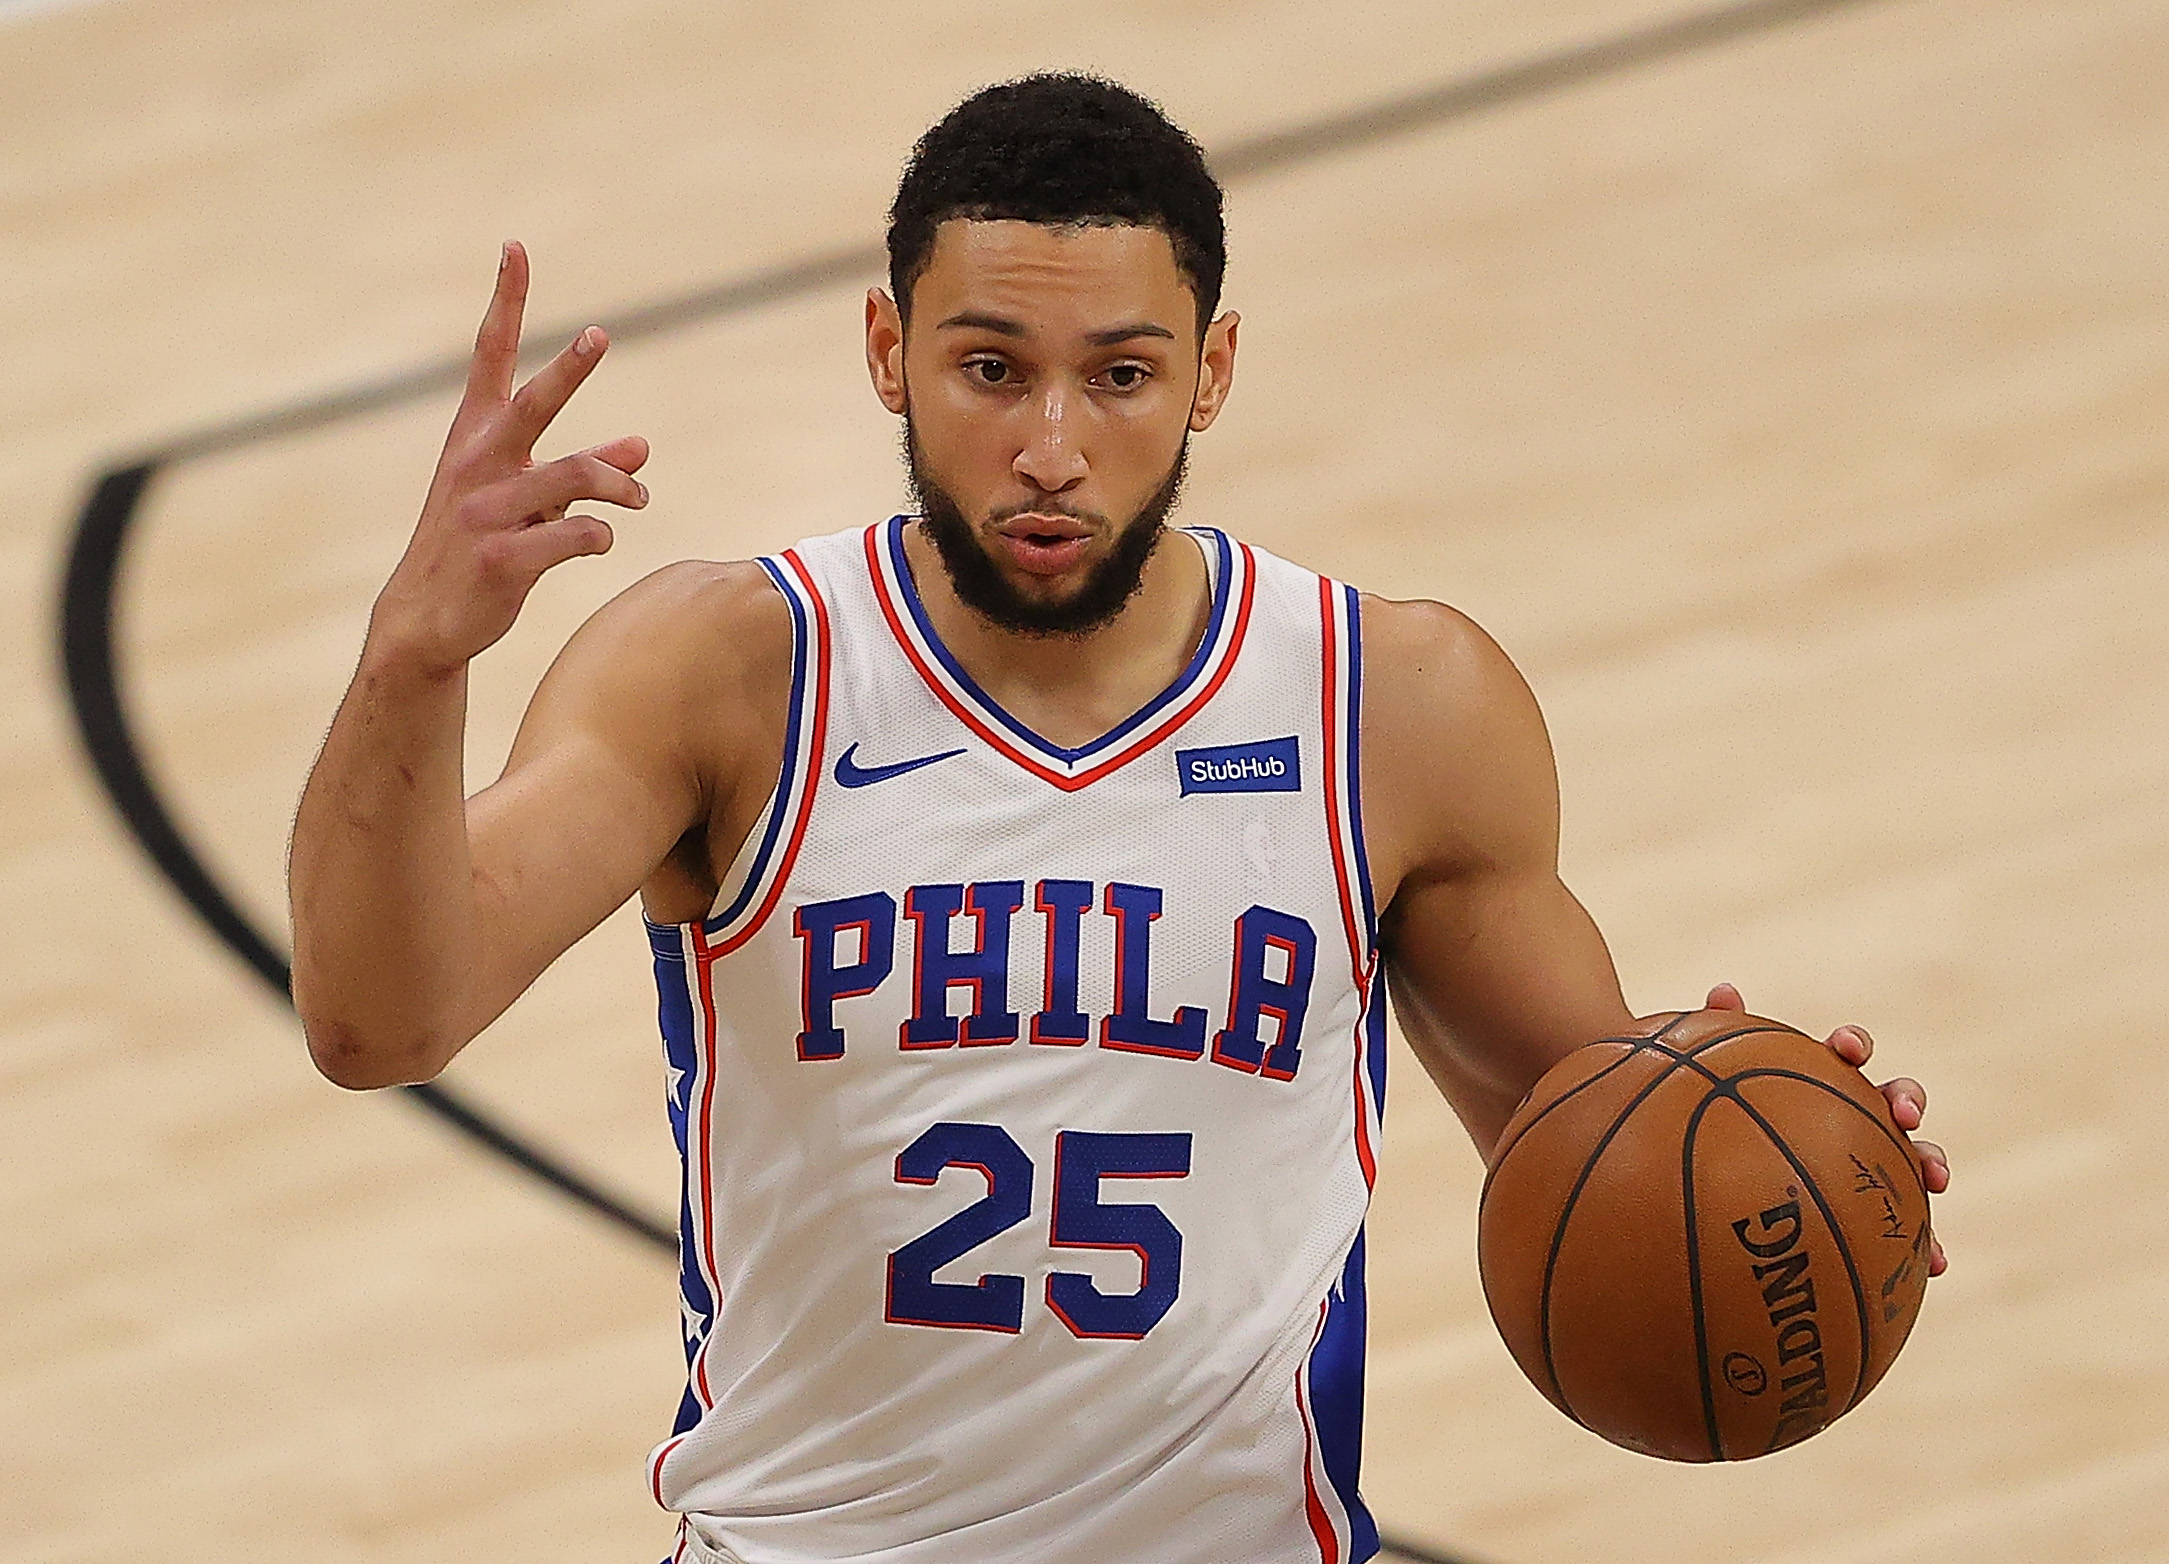 Ben Simmons #25 of the Philadelphia 76ers calls out a play against the Atlanta Hawks during the first half of game 6 of the Eastern Conference Semifinals at State Farm Arena on June 18, 2021 in Atlanta, Georgia.